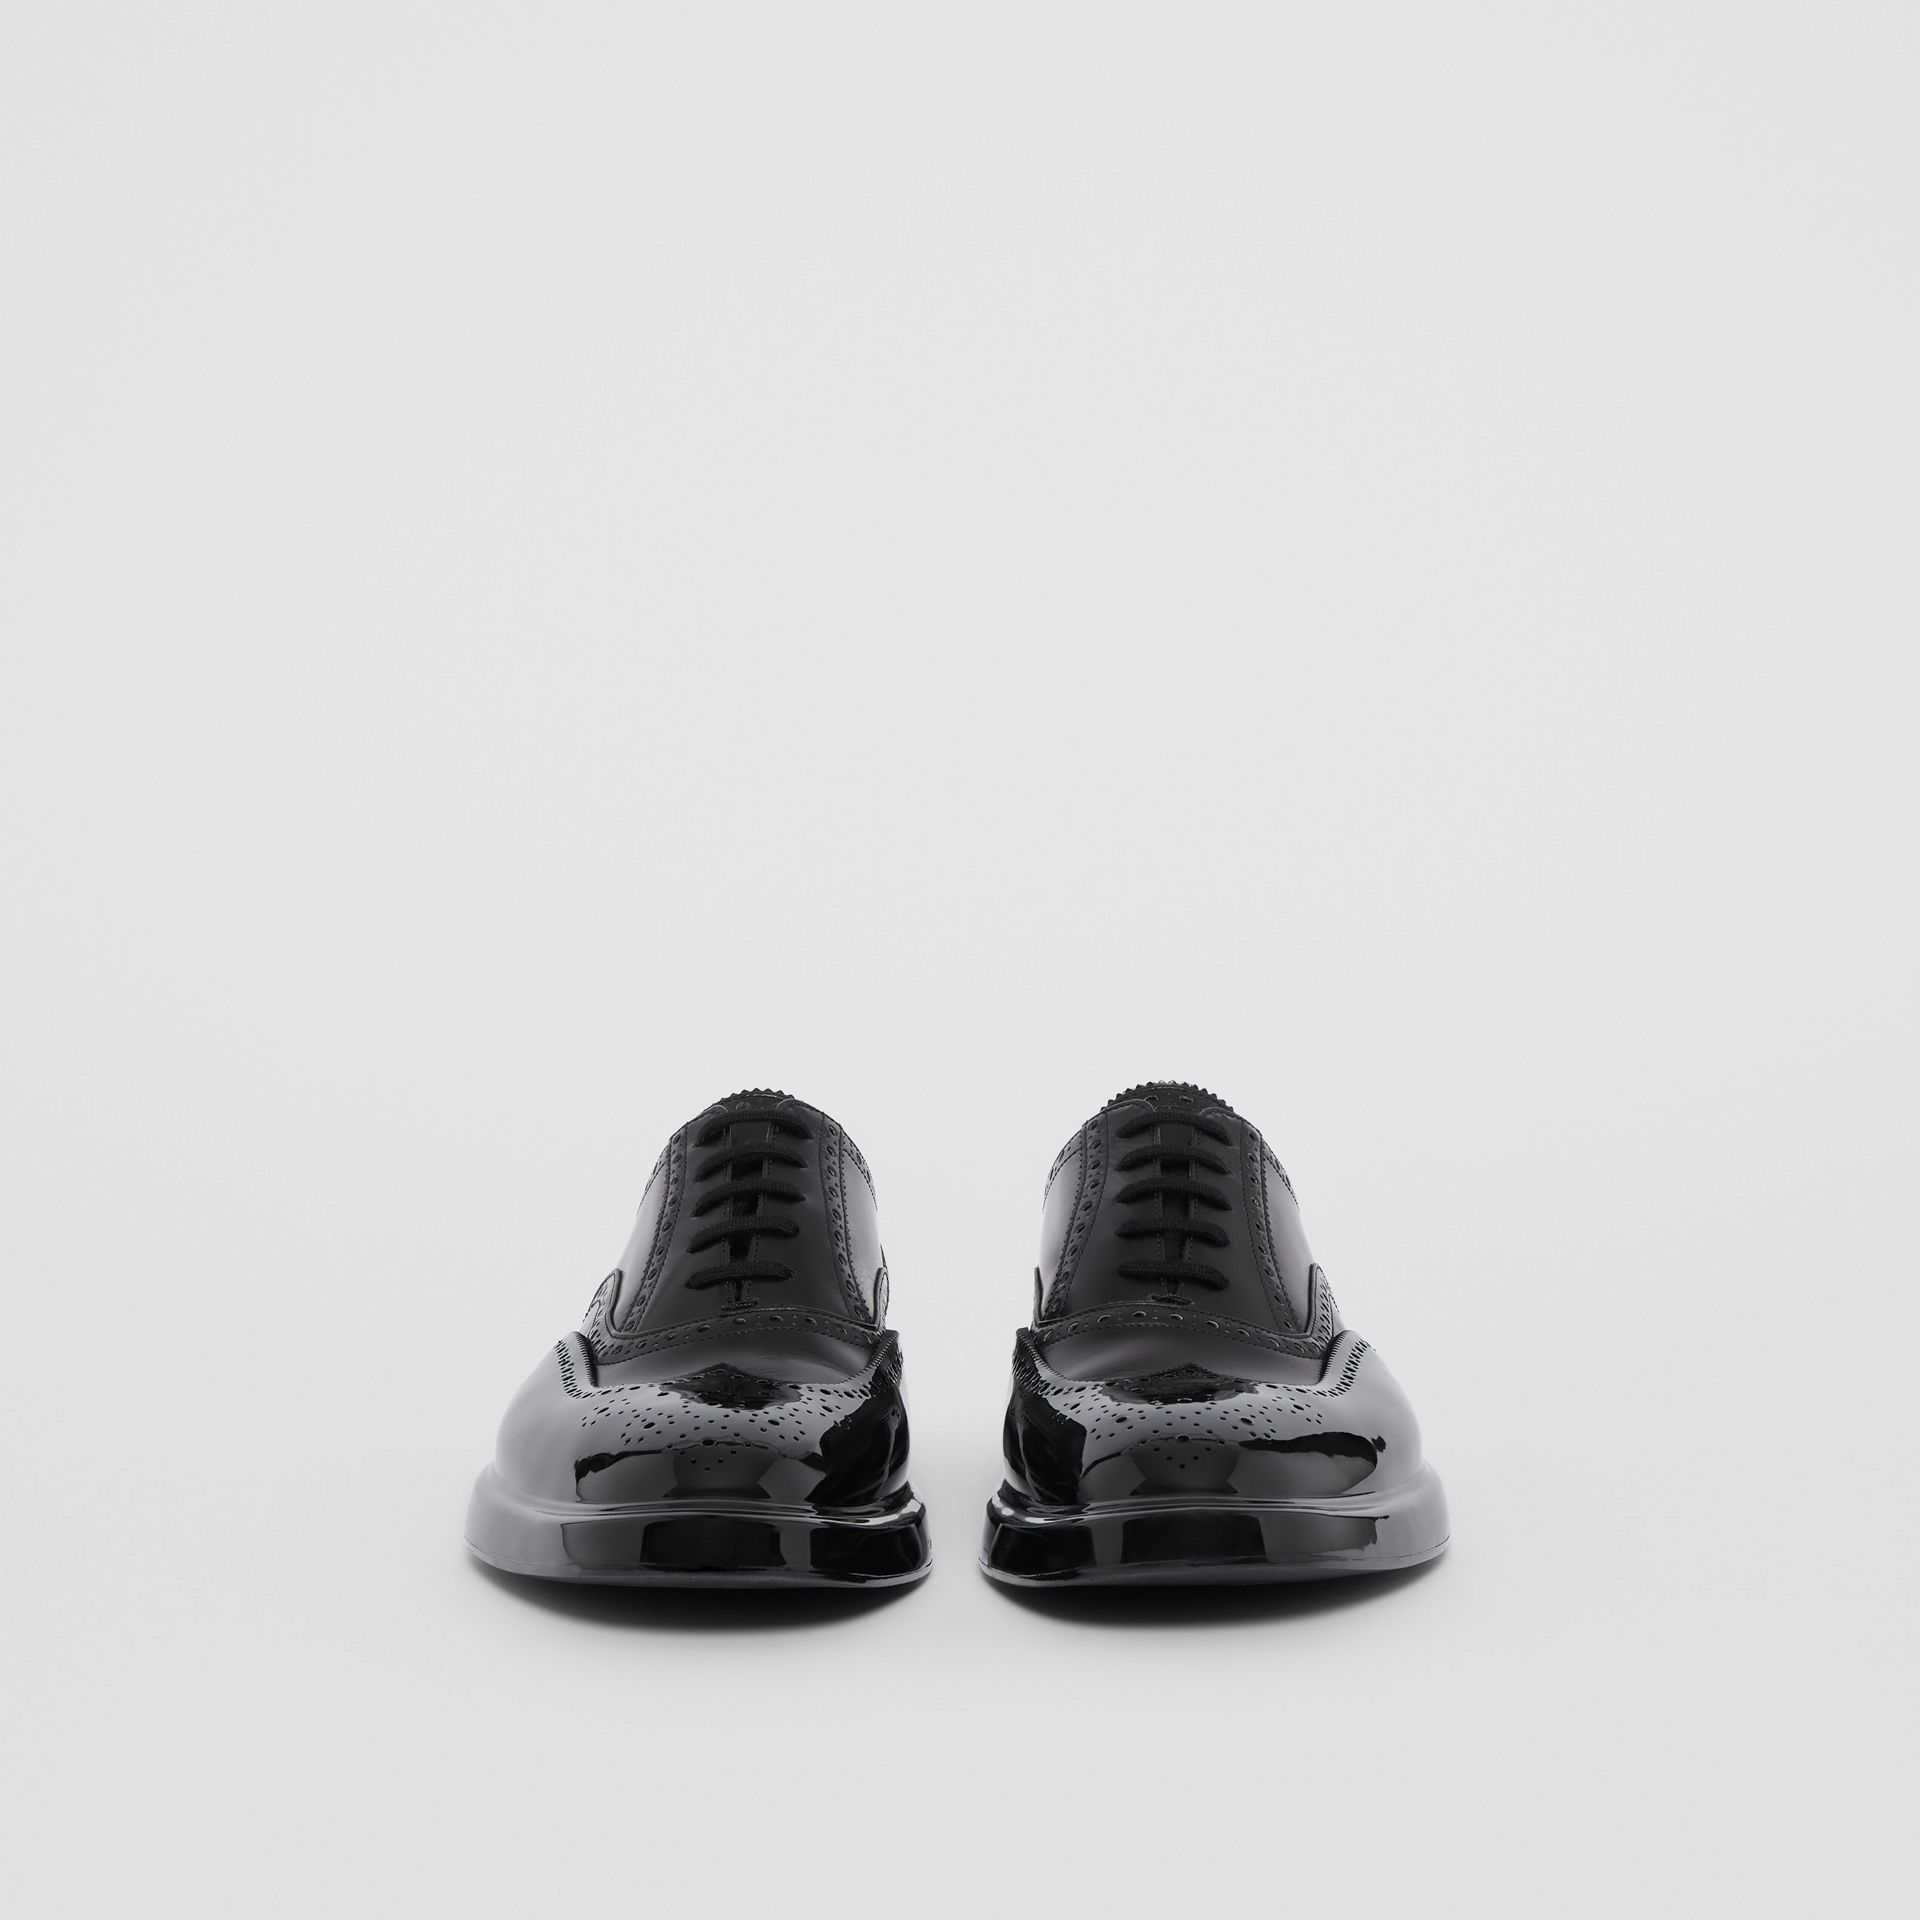 Toe Cap Detail Leather Oxford Brogues in Black - Men | Burberry - gallery image 3